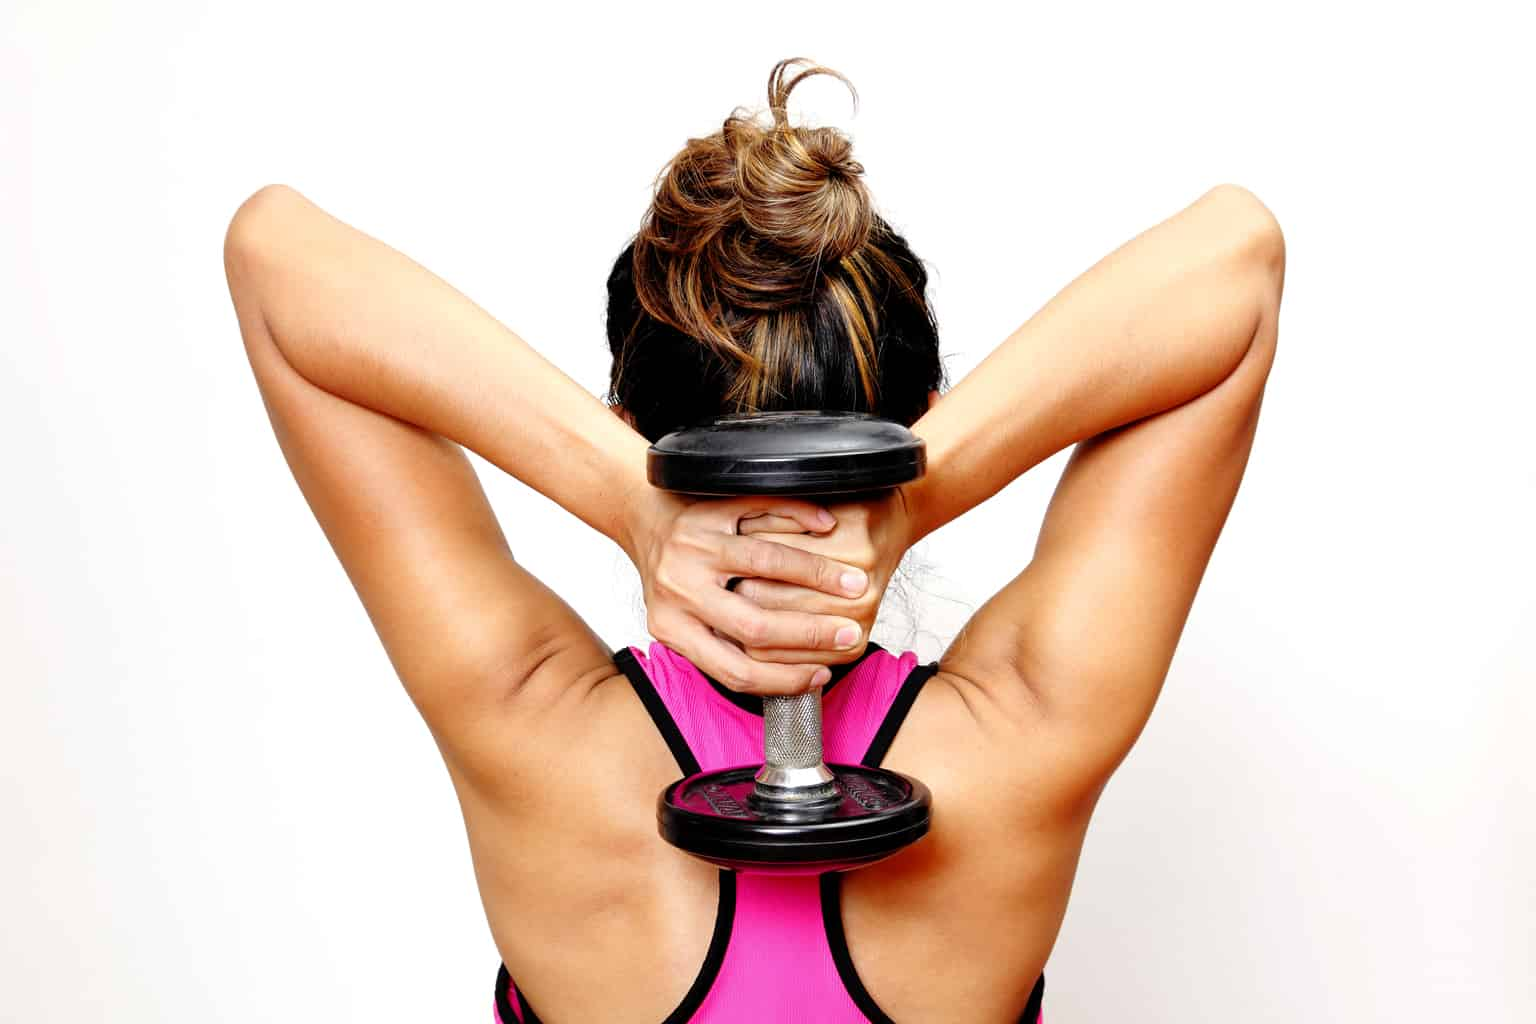 exercise getting toned and sleeping diet detectivediet detective